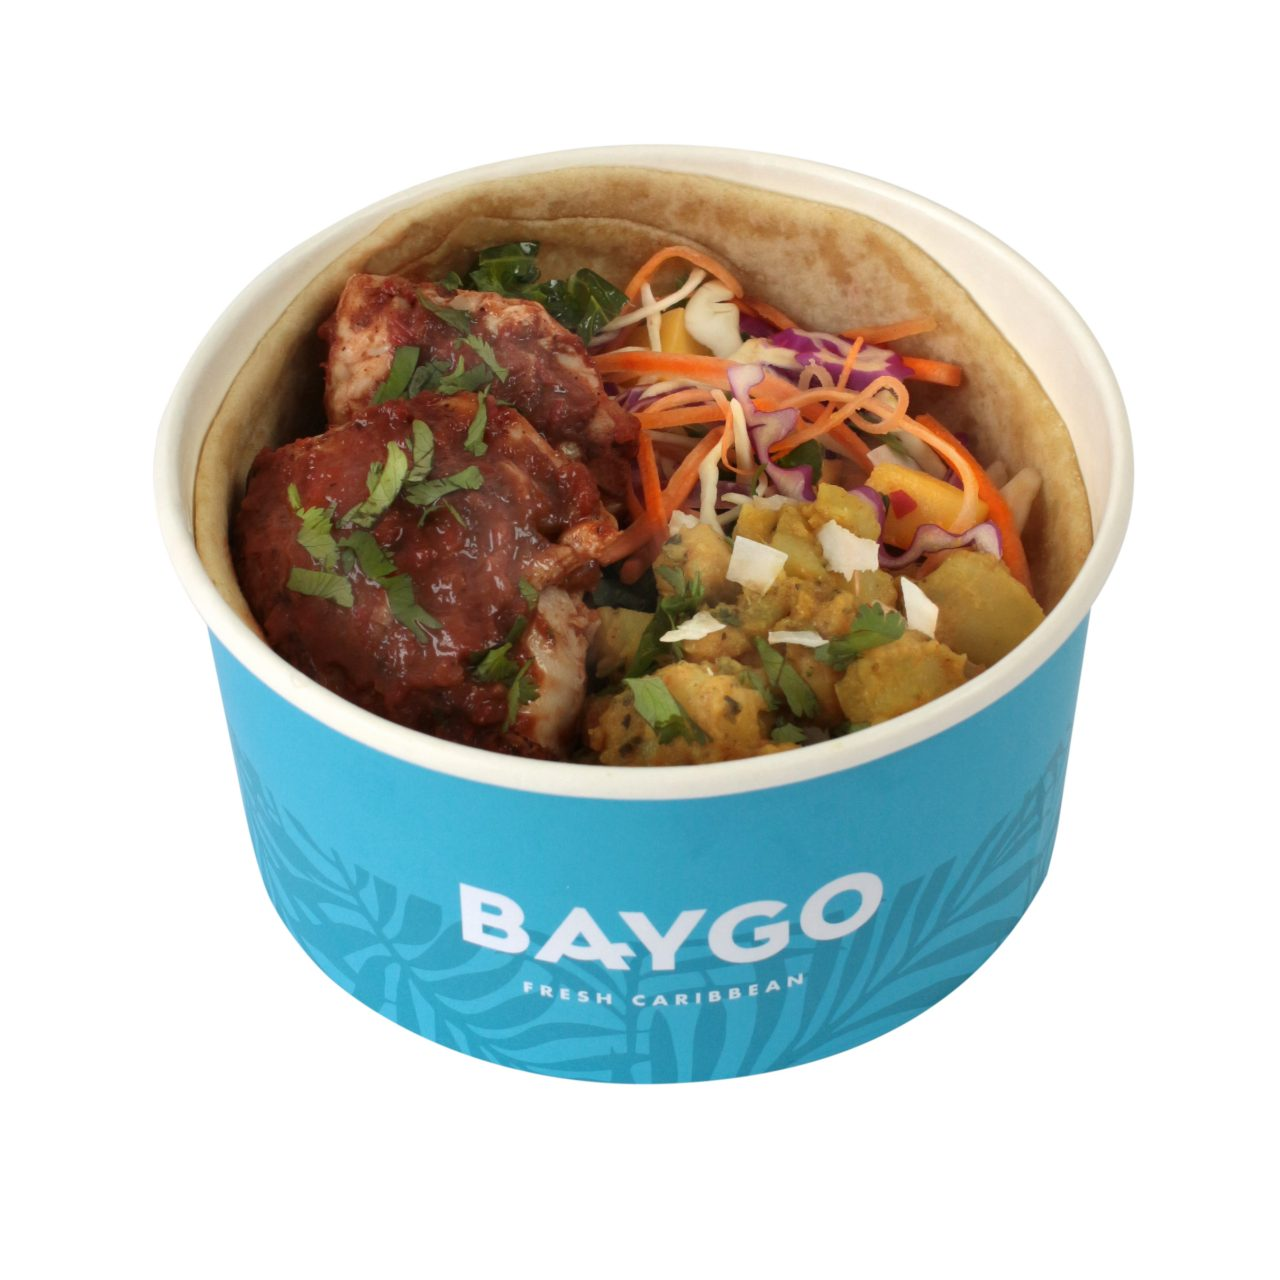 The way to go is BAYGO: Caribbean takeaway in the city